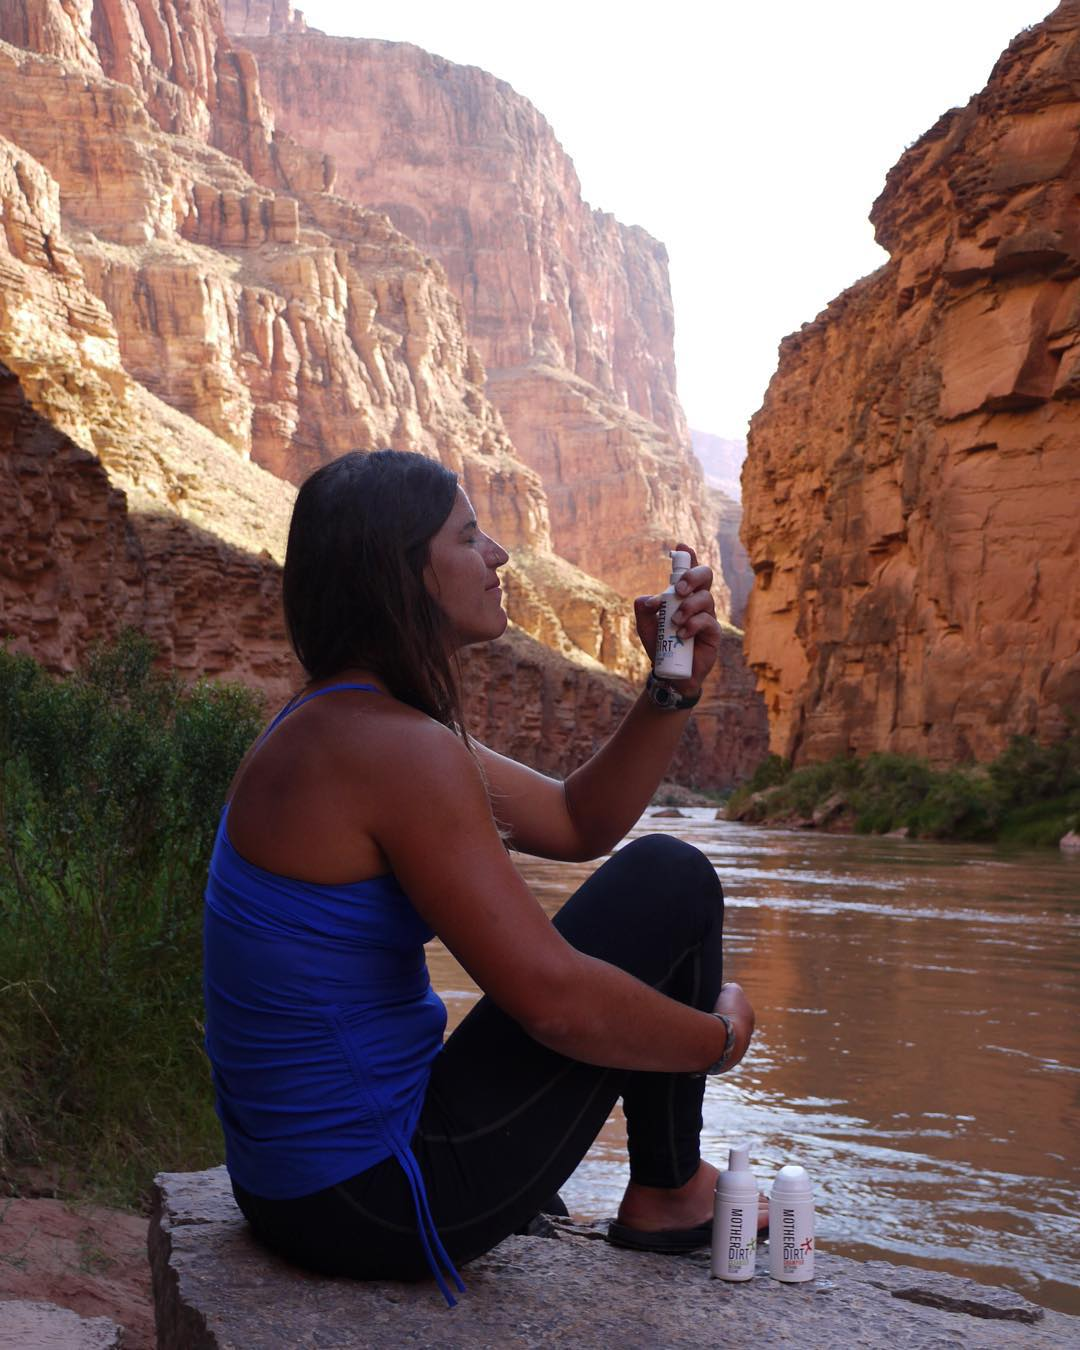 Product Testing @motherdirt during my 2 weeks in the Grand Canyon. Probiotic Cleansers and Mists are much needed for this desert riverrat in the hot dry southwest! #motherdirt #grandcanyon #rivertrip #photo @gracedbygrit @astralfootwear